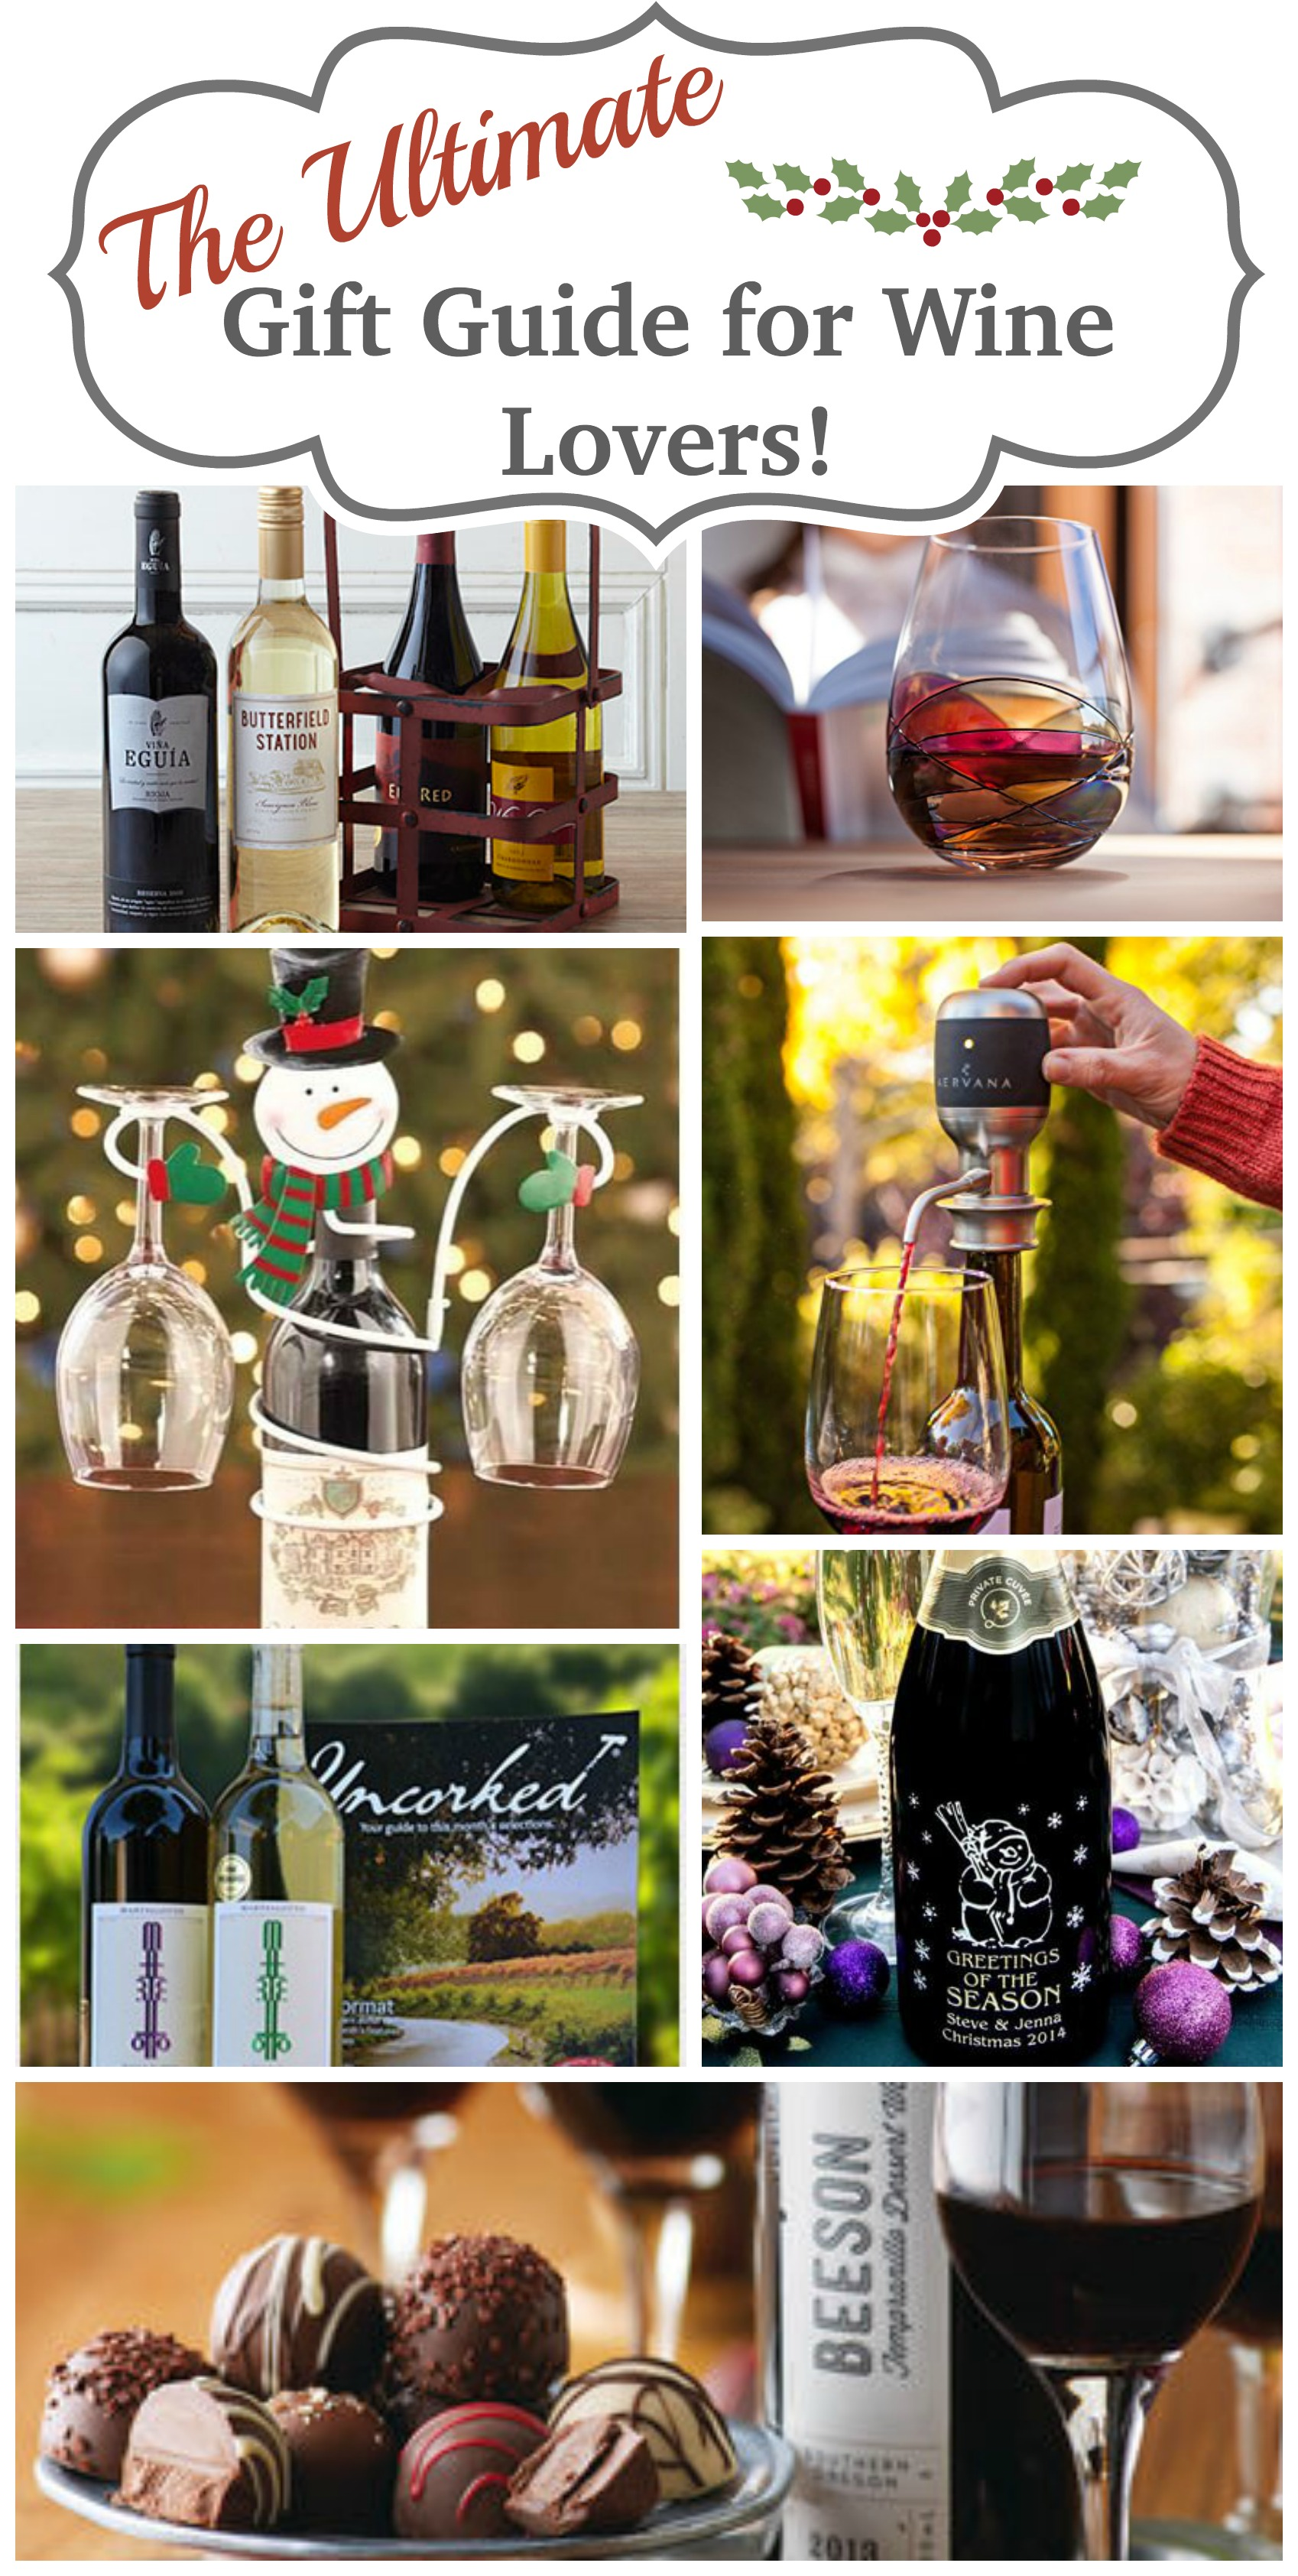 Great Gift Ideas for that Wine Lover on your gift list!